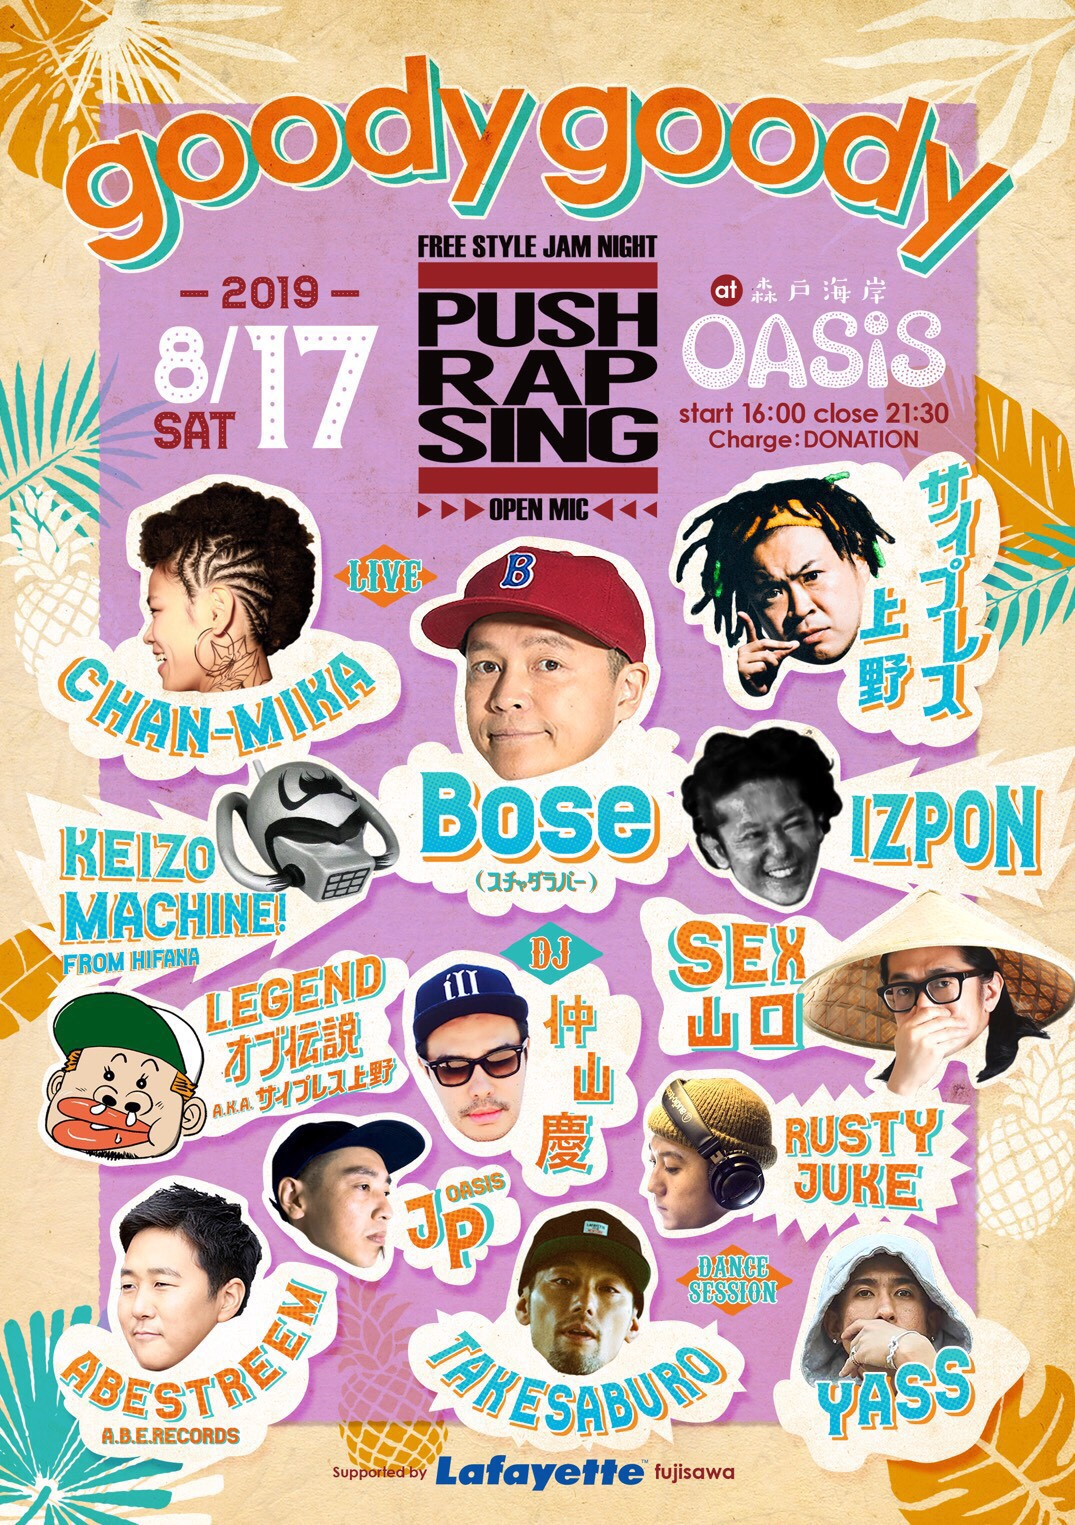 Push Rap Sing × goody goody